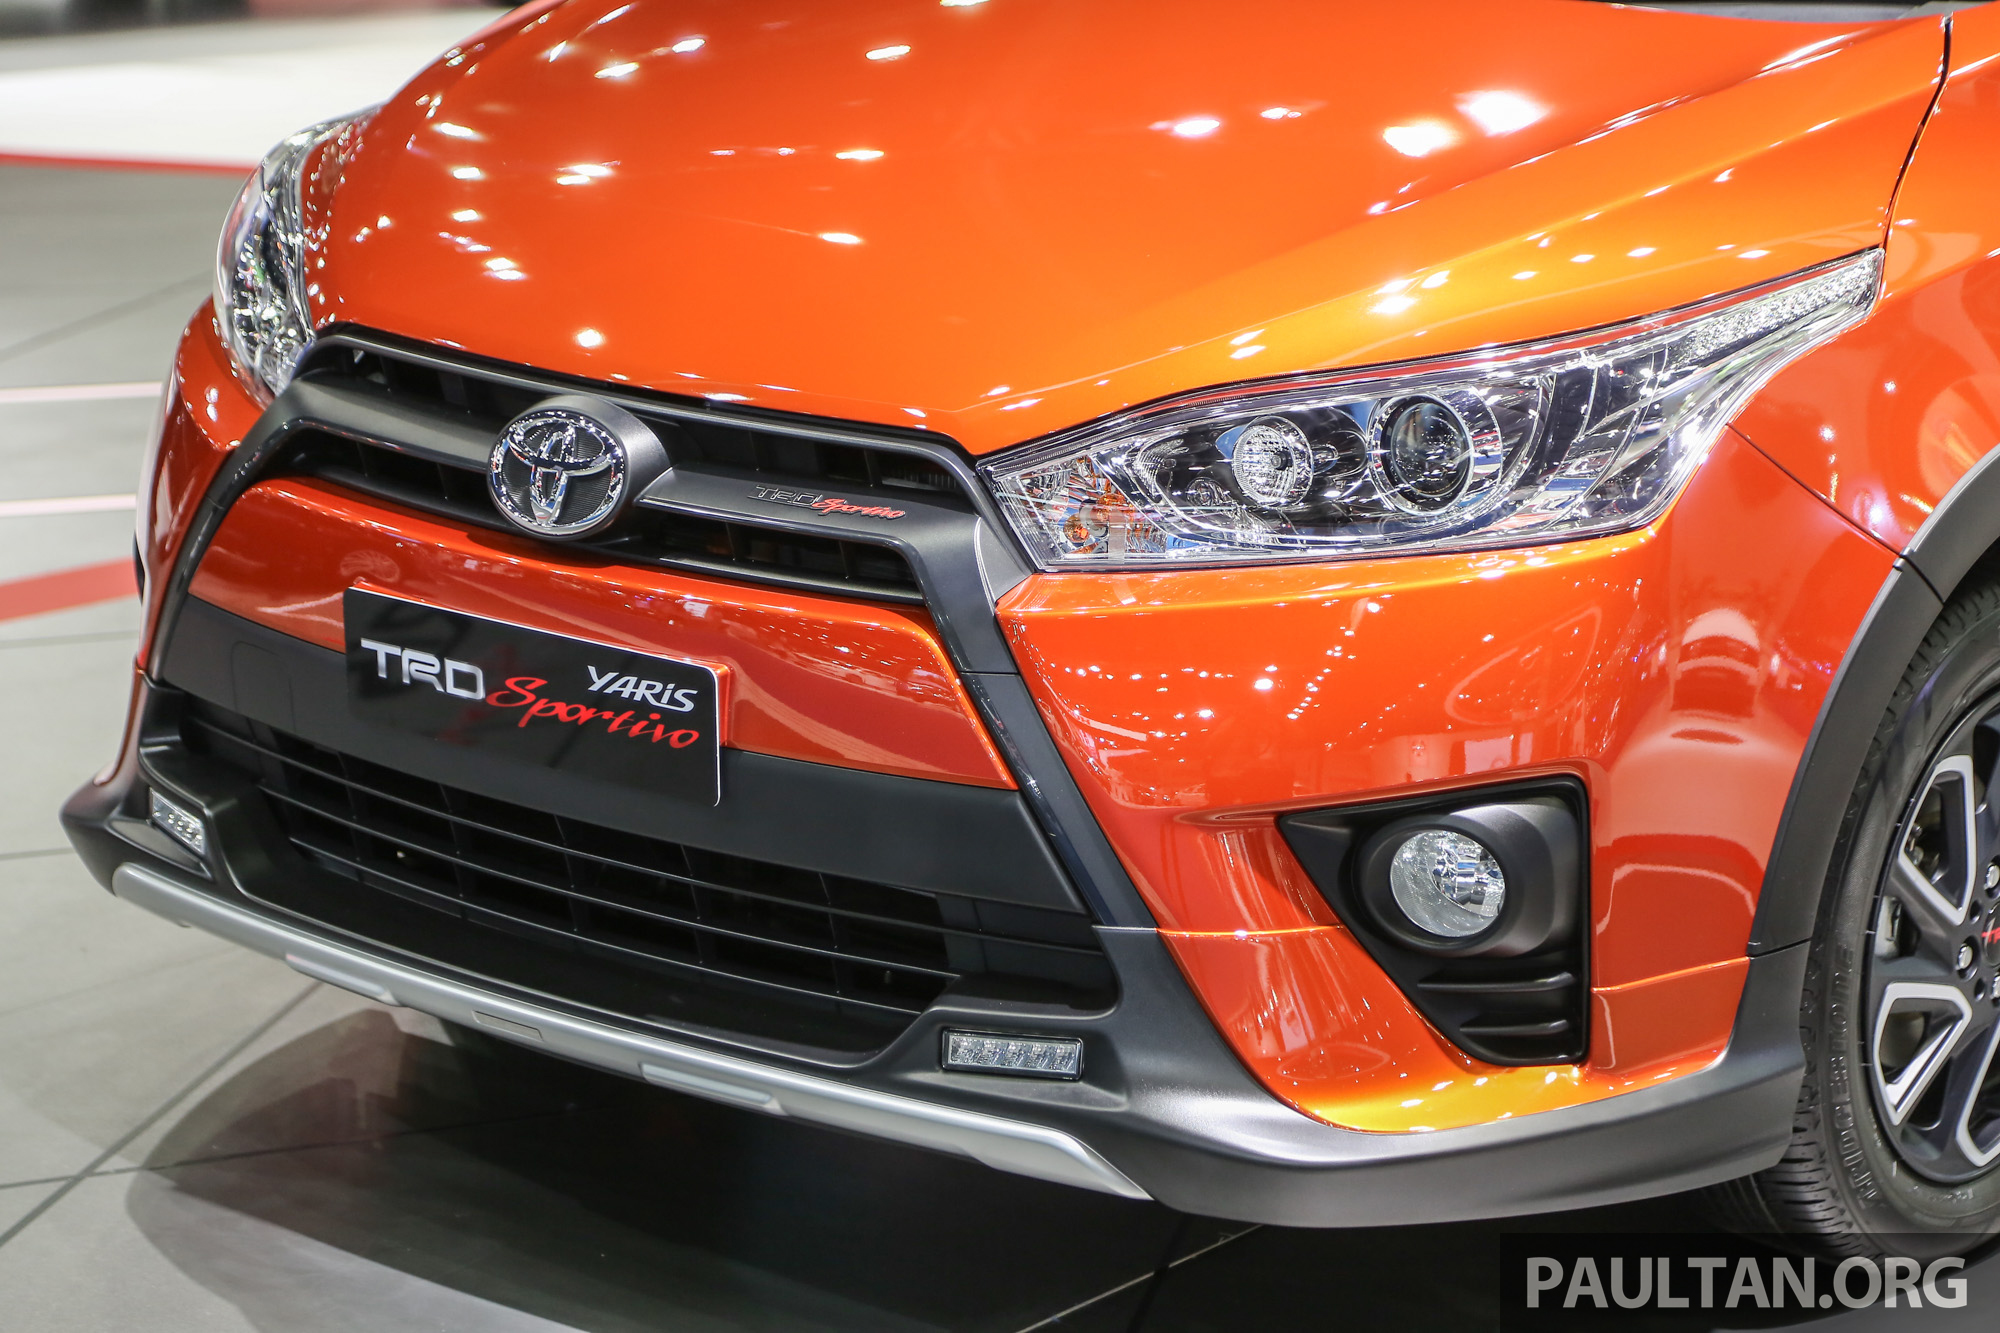 toyota yaris trd sportivo specs new agya gallery at bangkok 2016 paul